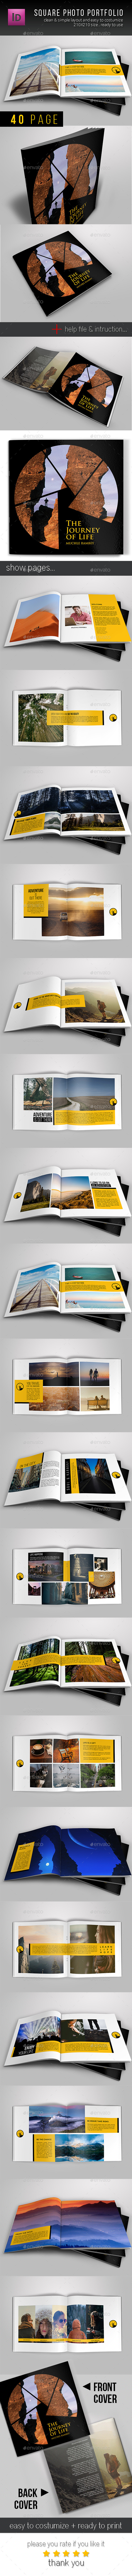 GraphicRiver Photographer Portfolio Album 10943164